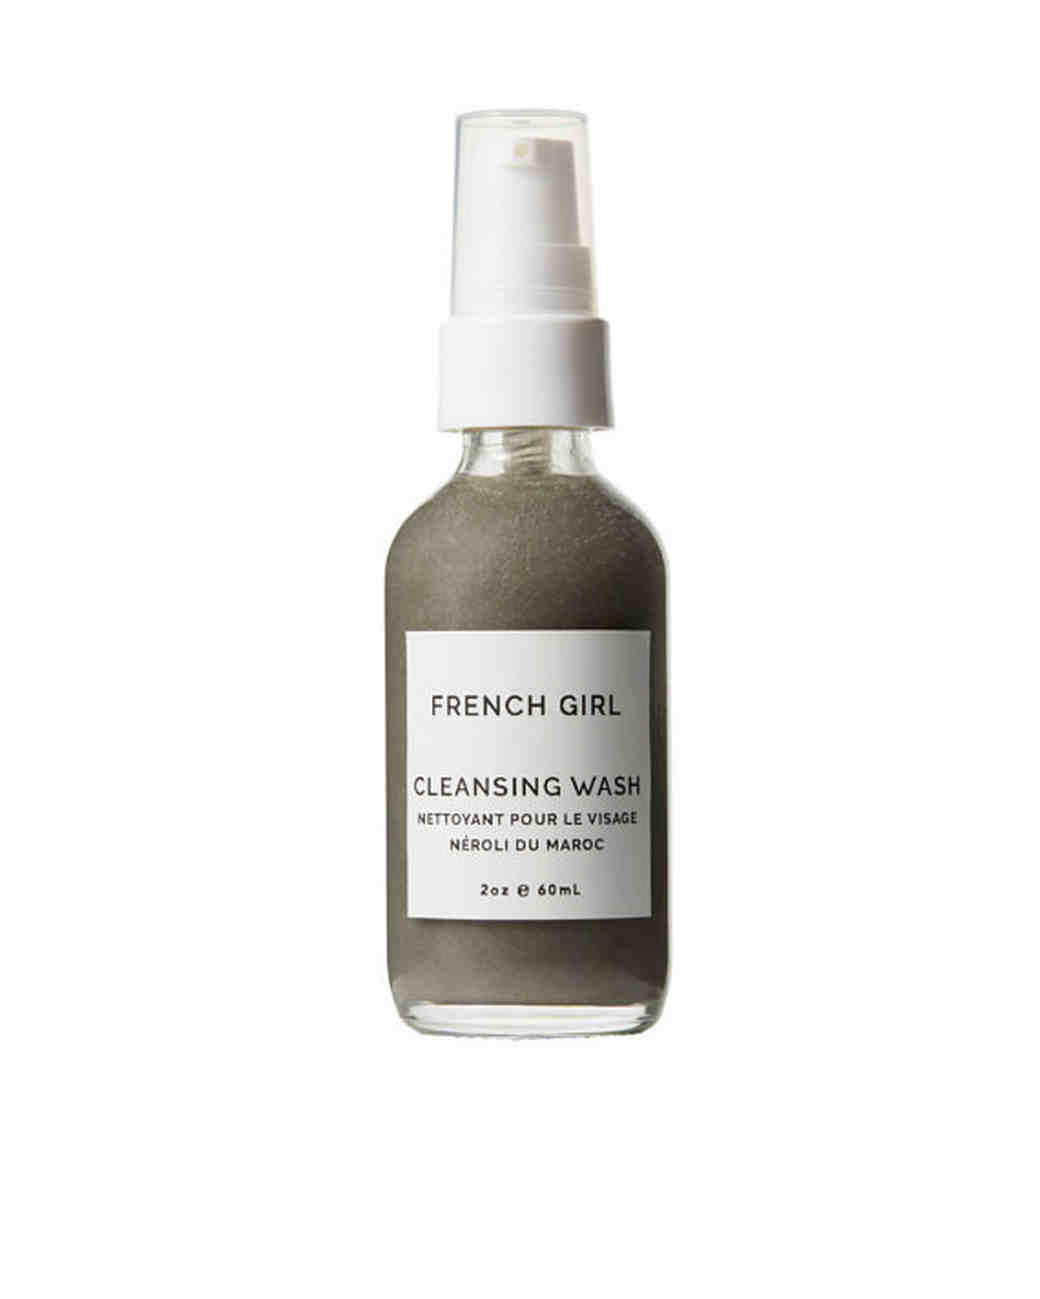 French Girl Cleansing Wash